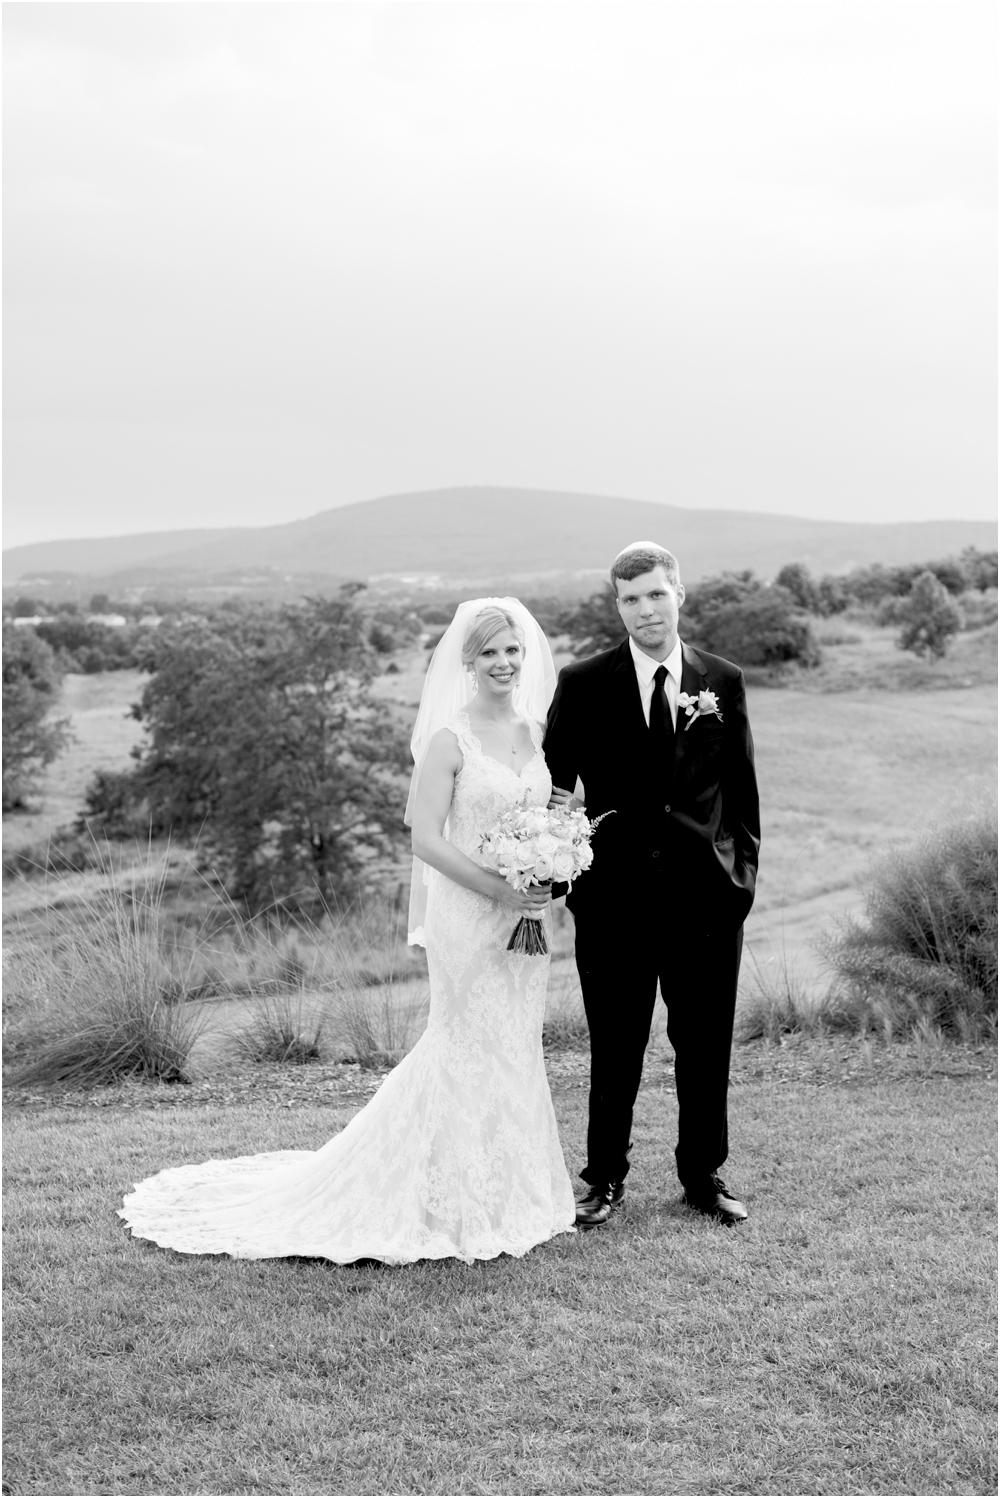 Musket Ridge Golf Course Wedding | Blush & Lavender Ombre Inspired Wedding | Country Club Wedding | Living Radiant Photography